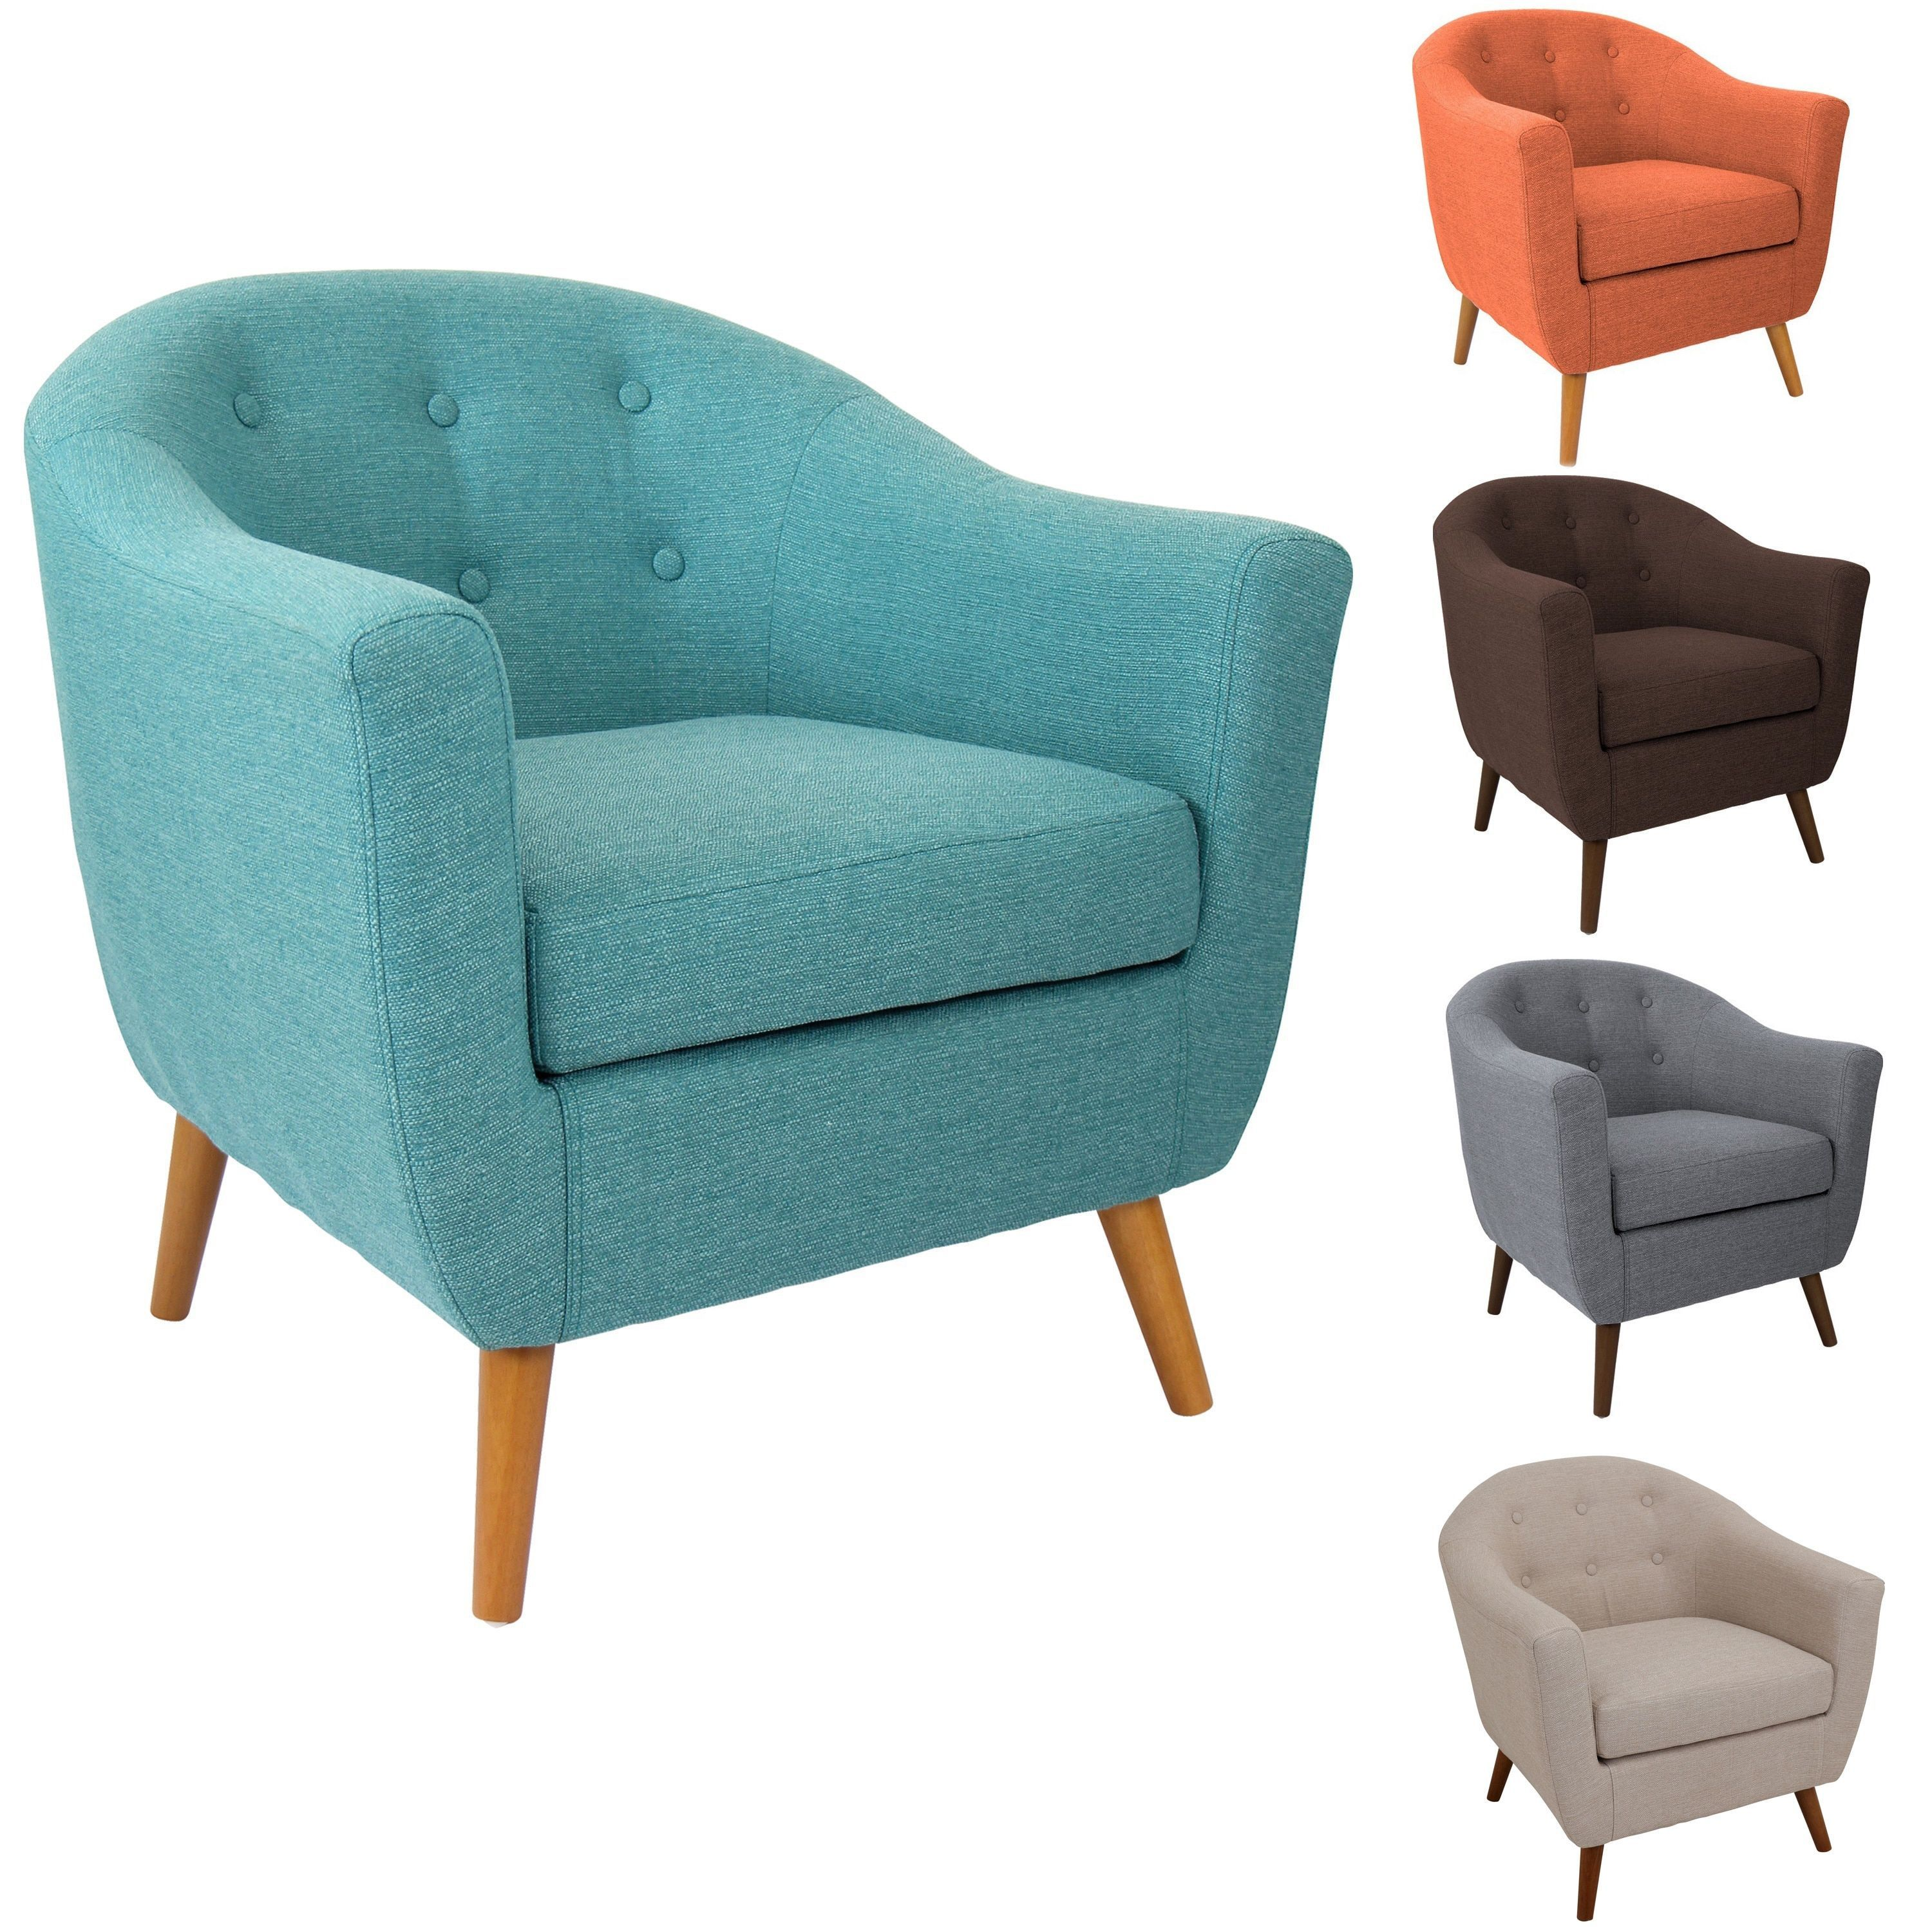 Best Deals On Living Room Furniture: Rockwell Mid Century Accent Chair